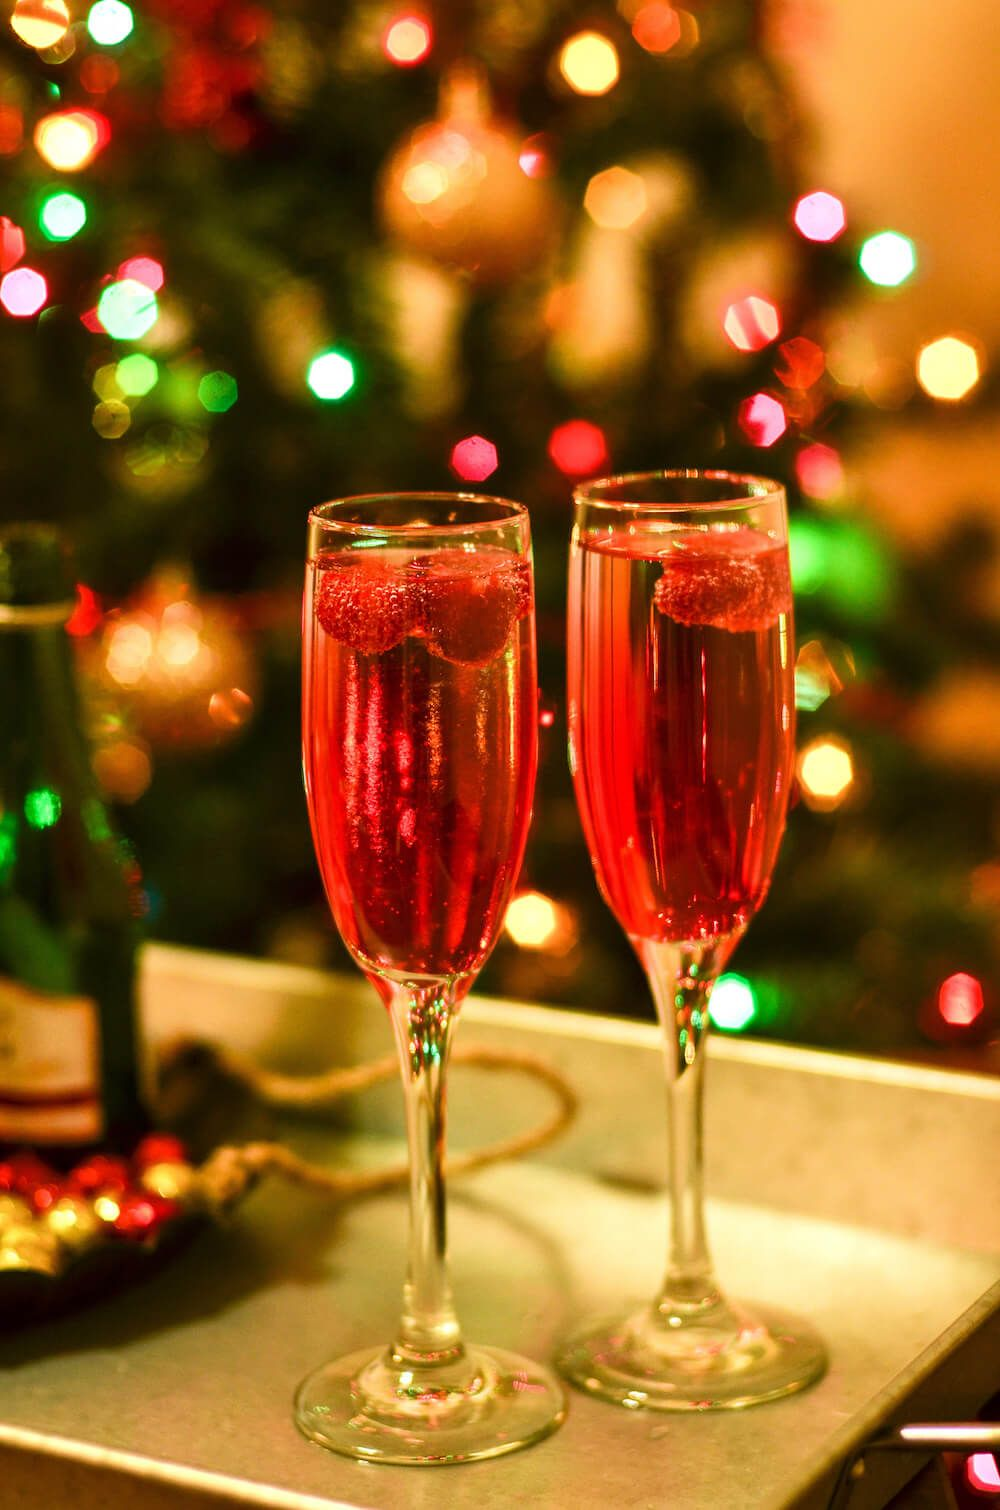 Raspberry Sparkling Wine Or Champagne Drink Recipe Champagne Drinks Sparkling Wine Champagne